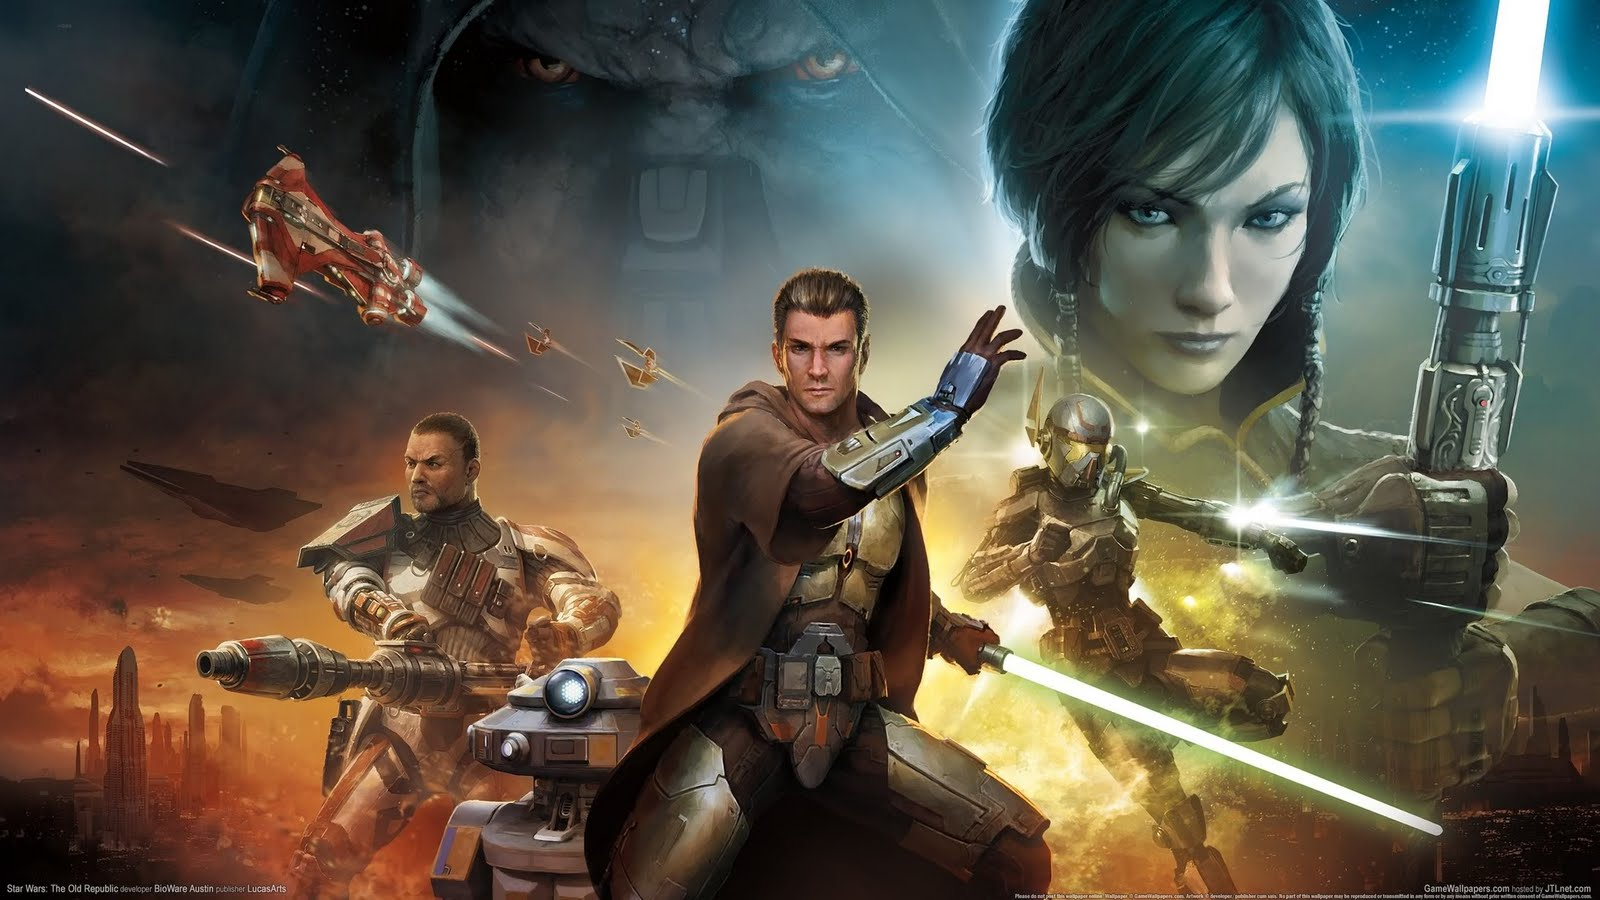 Wallpaper_star_wars_the_old_republic_04_2560x1440.jpg